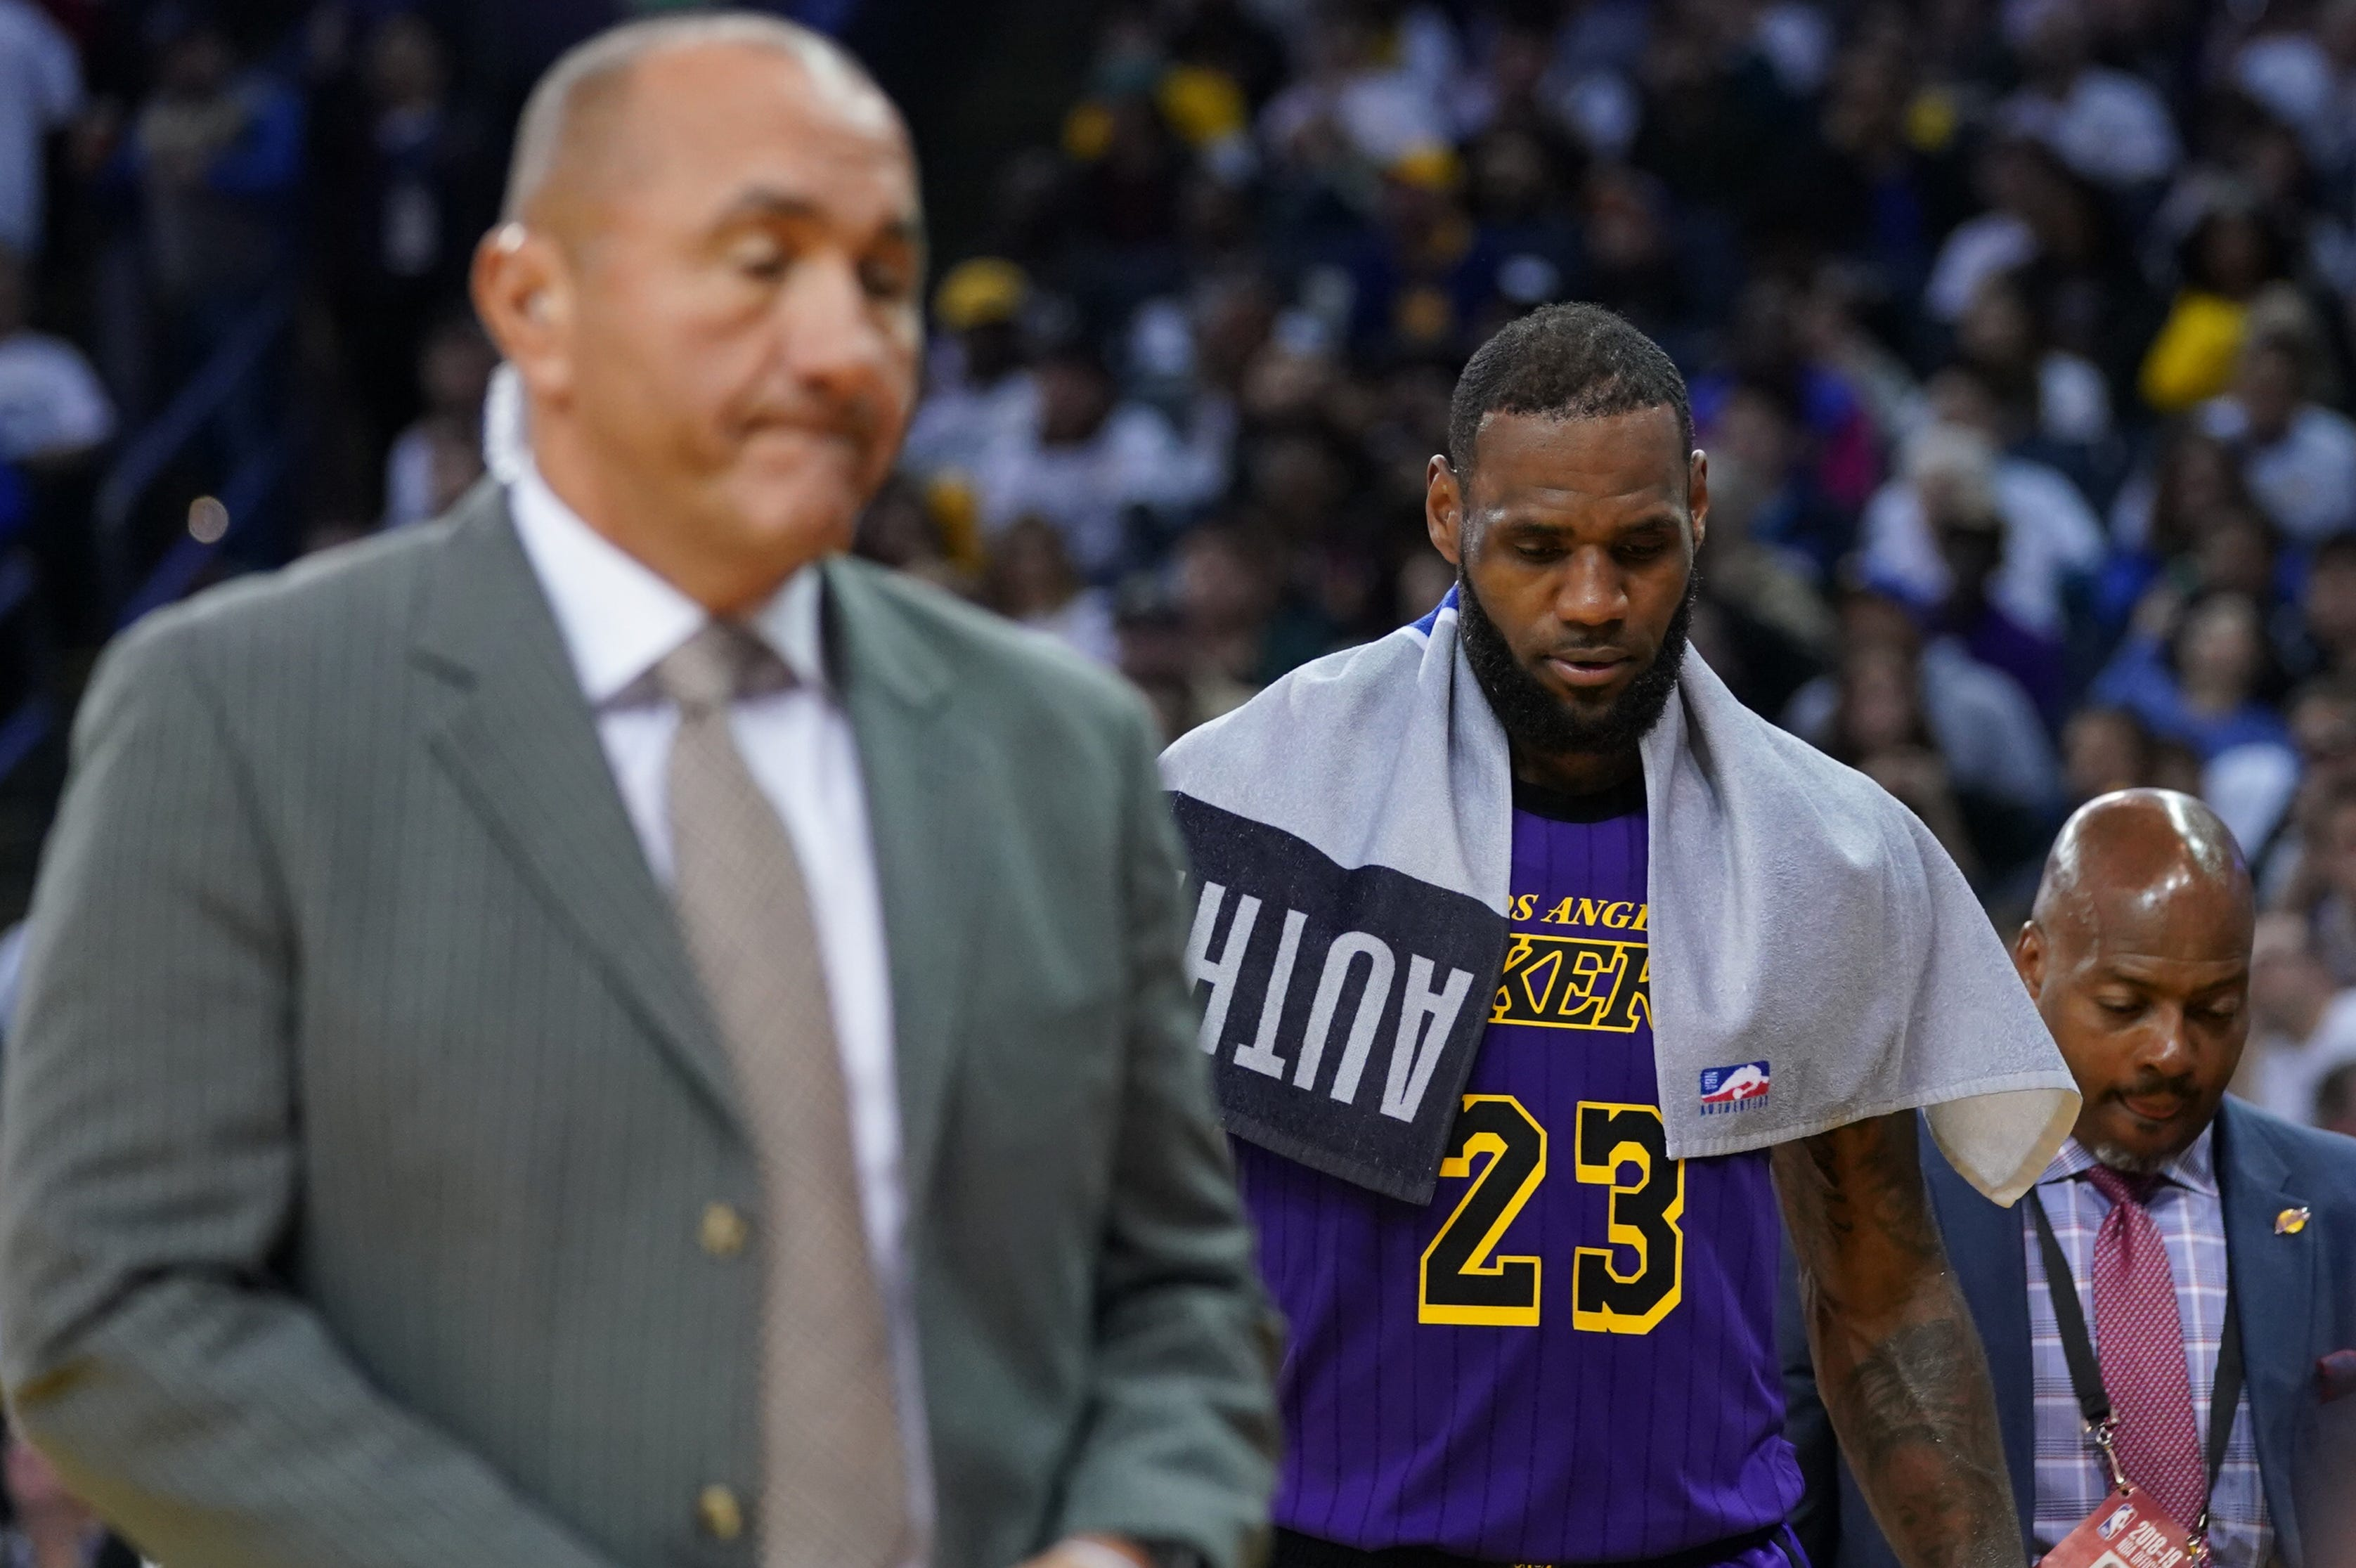 LeBron James exits Lakers' matchup with Warriors with strained left groin